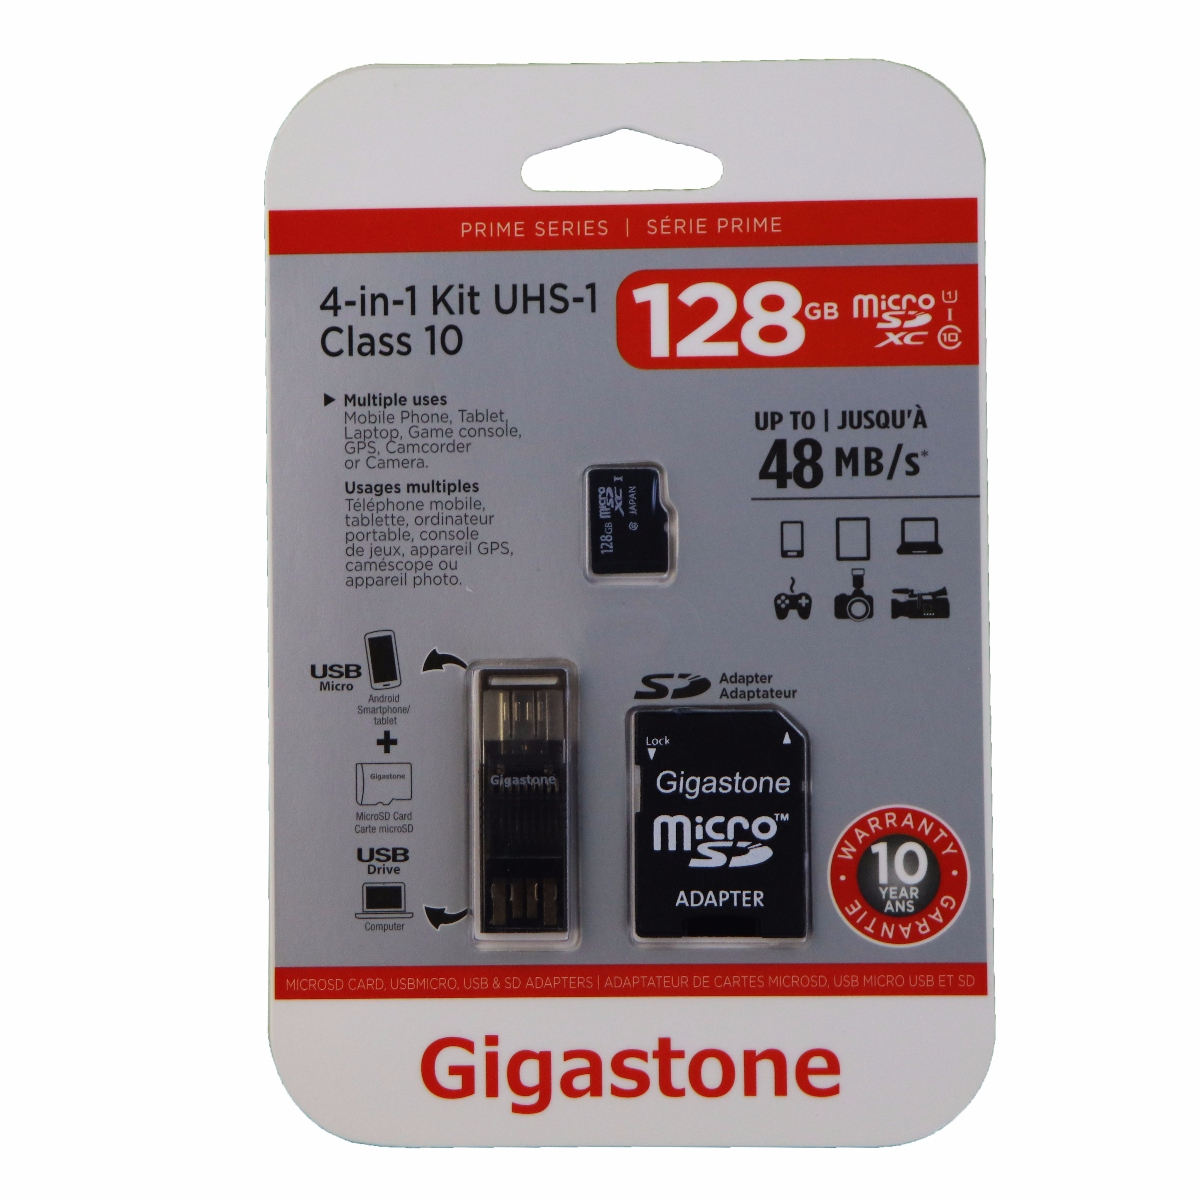 Gigastone 4-in-1 128GB MicroSD Kit with USB and Micro-USB Card Reading Adapter